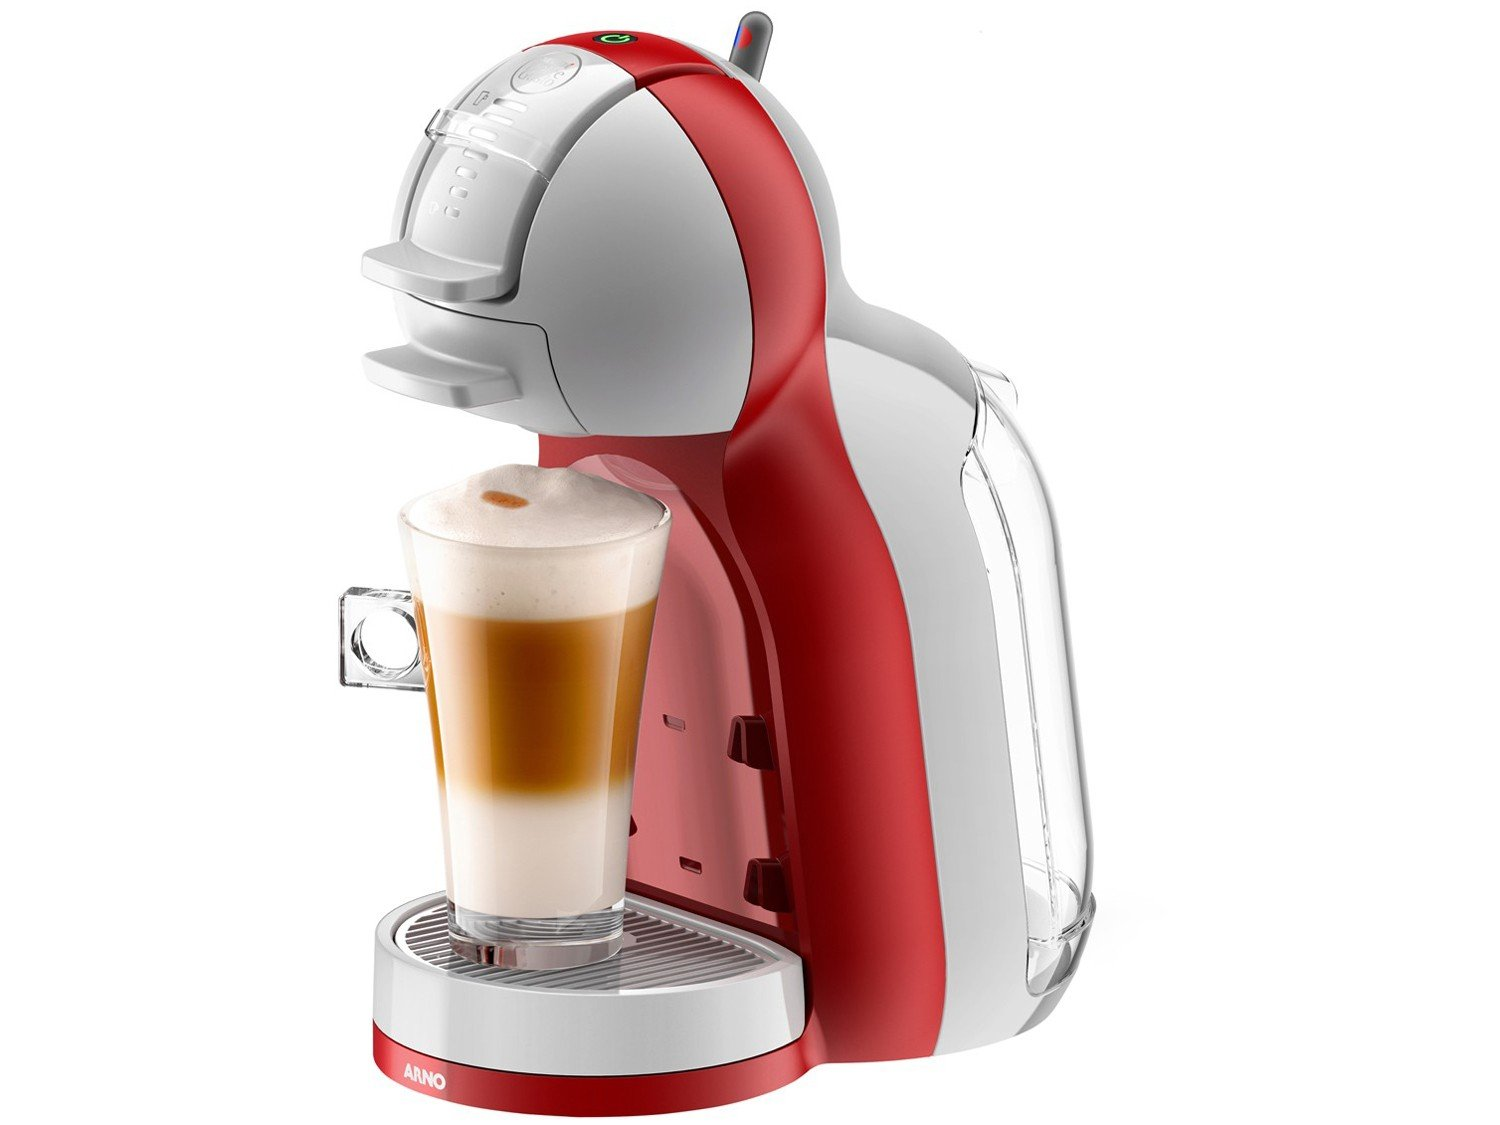 Cafeteira Expresso Arno Dolce Gusto